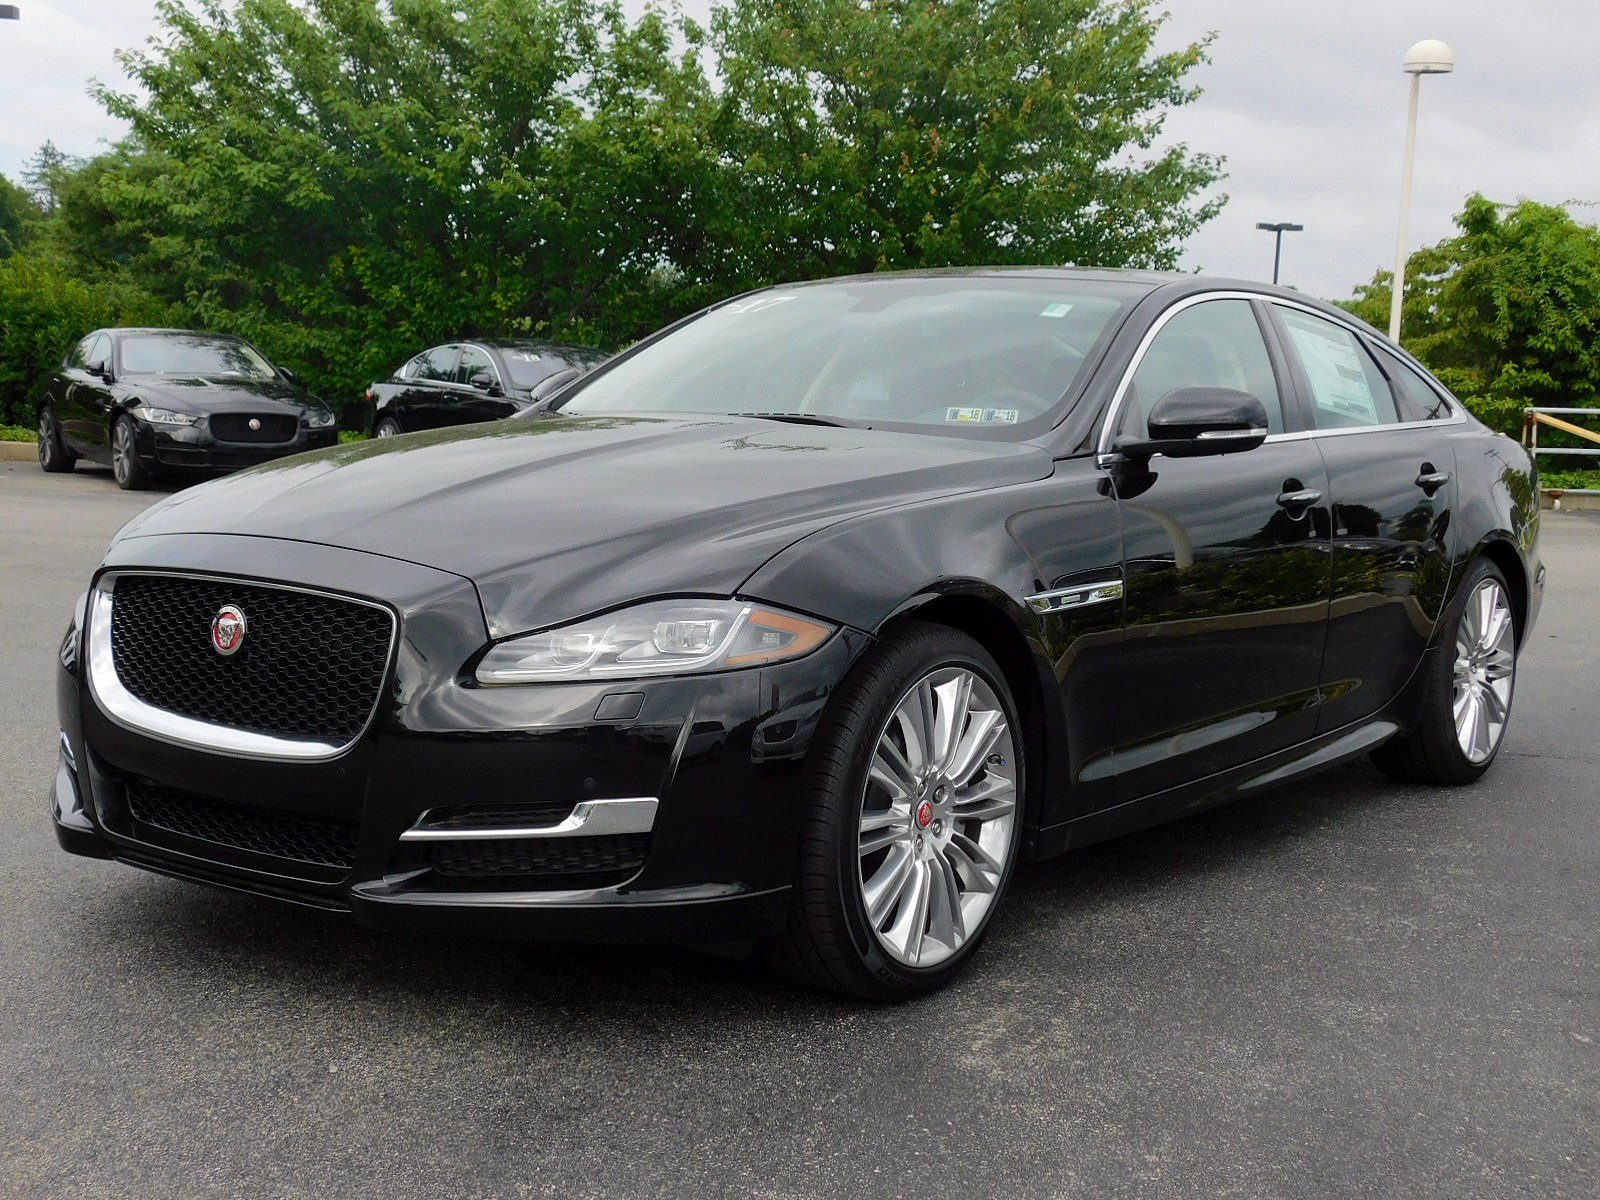 fwd jaguar mkz in hybrid car inventory owned cincinnati used lincoln pre